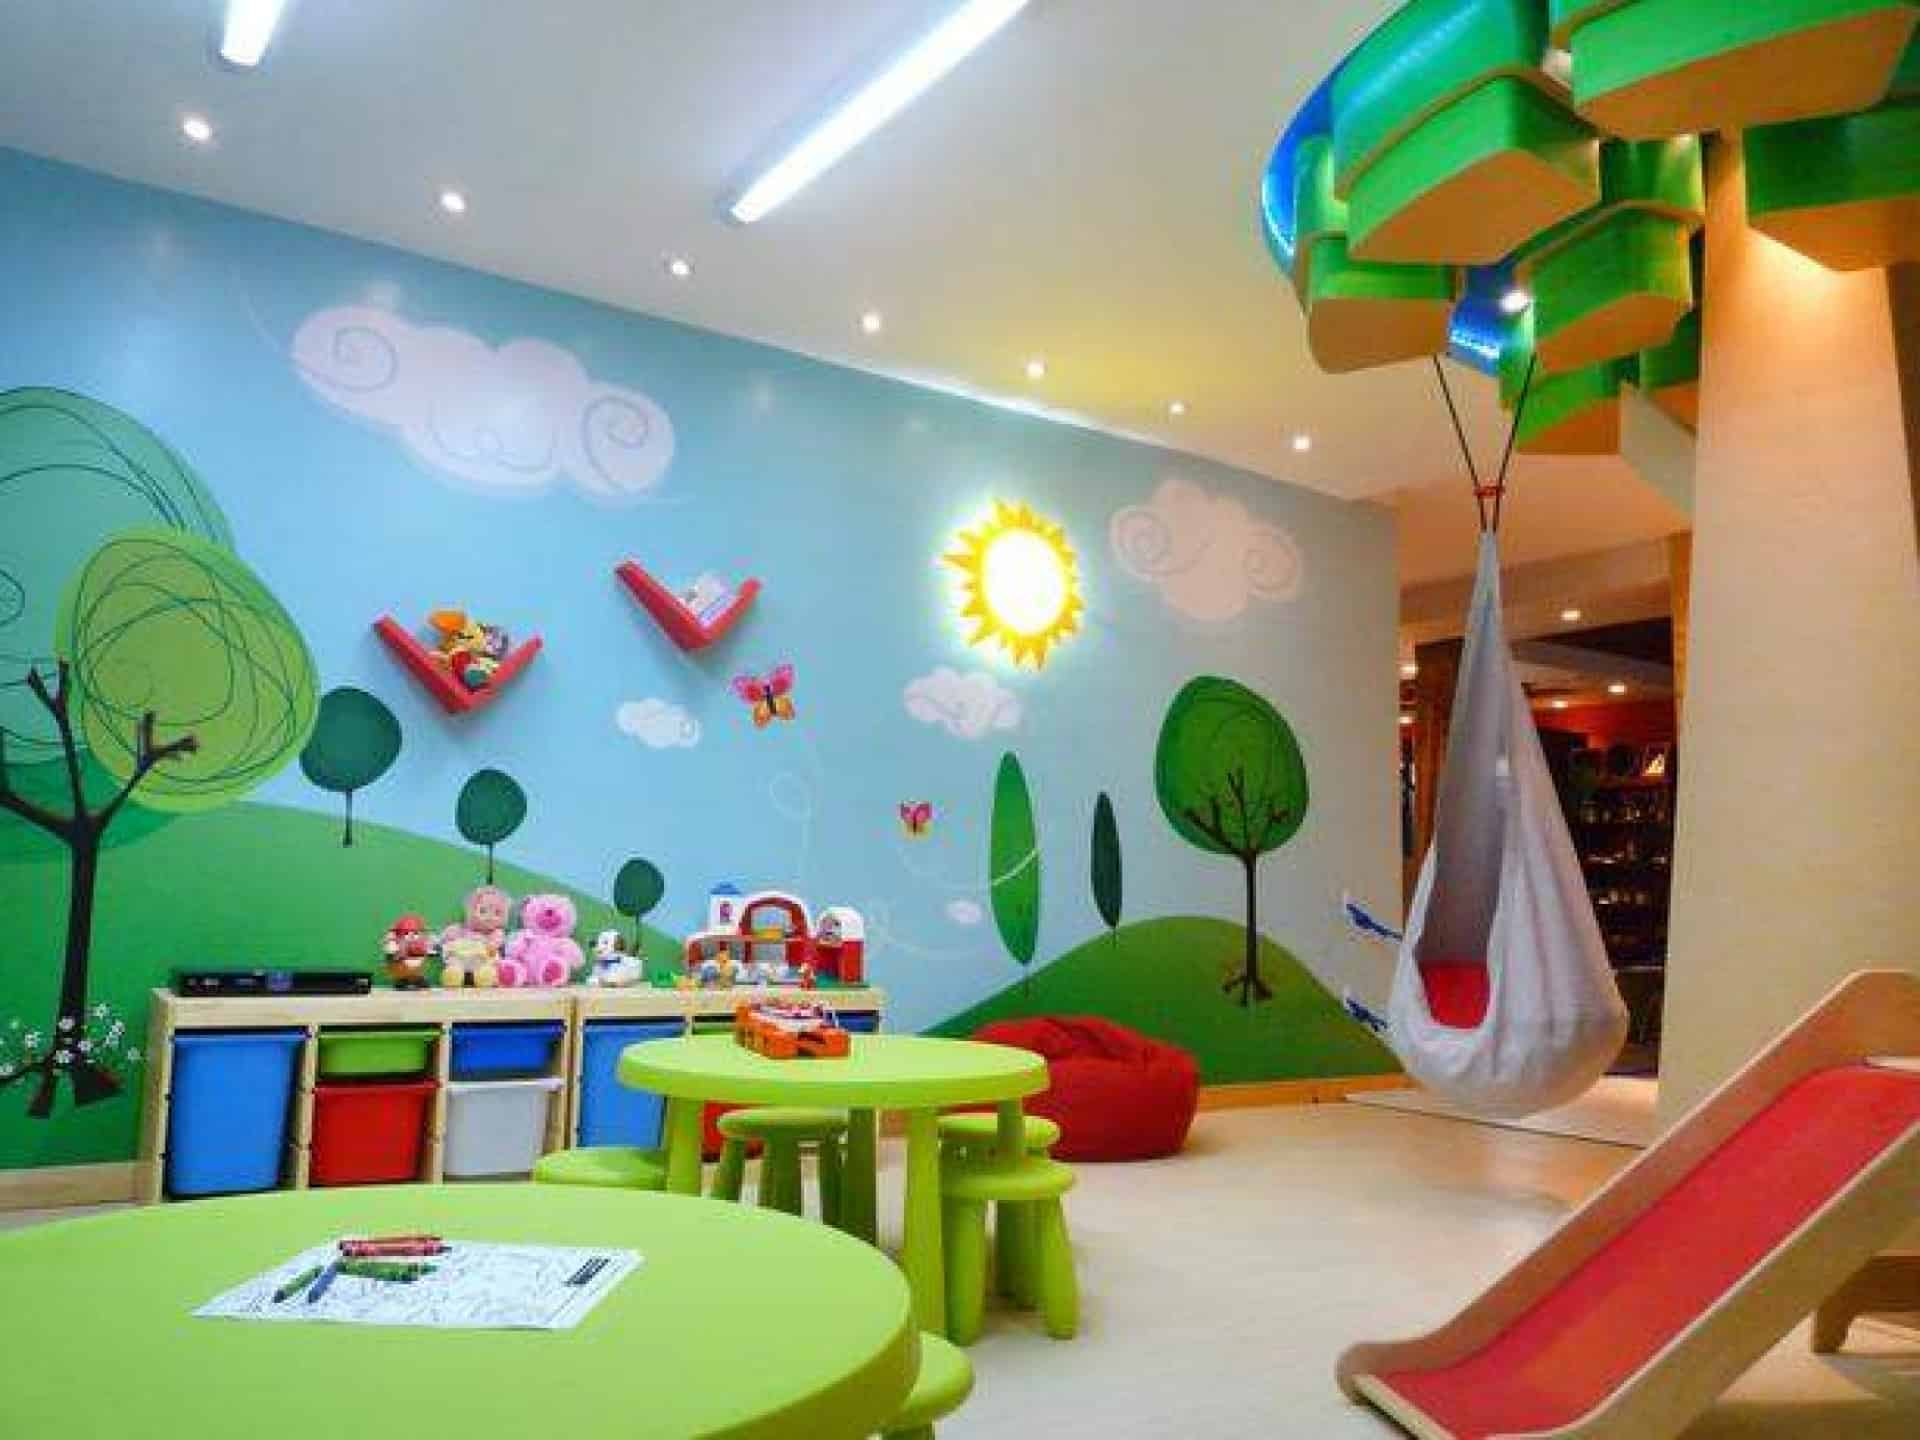 Inspiring And Playful Kids Room Ideas Decoration Channel